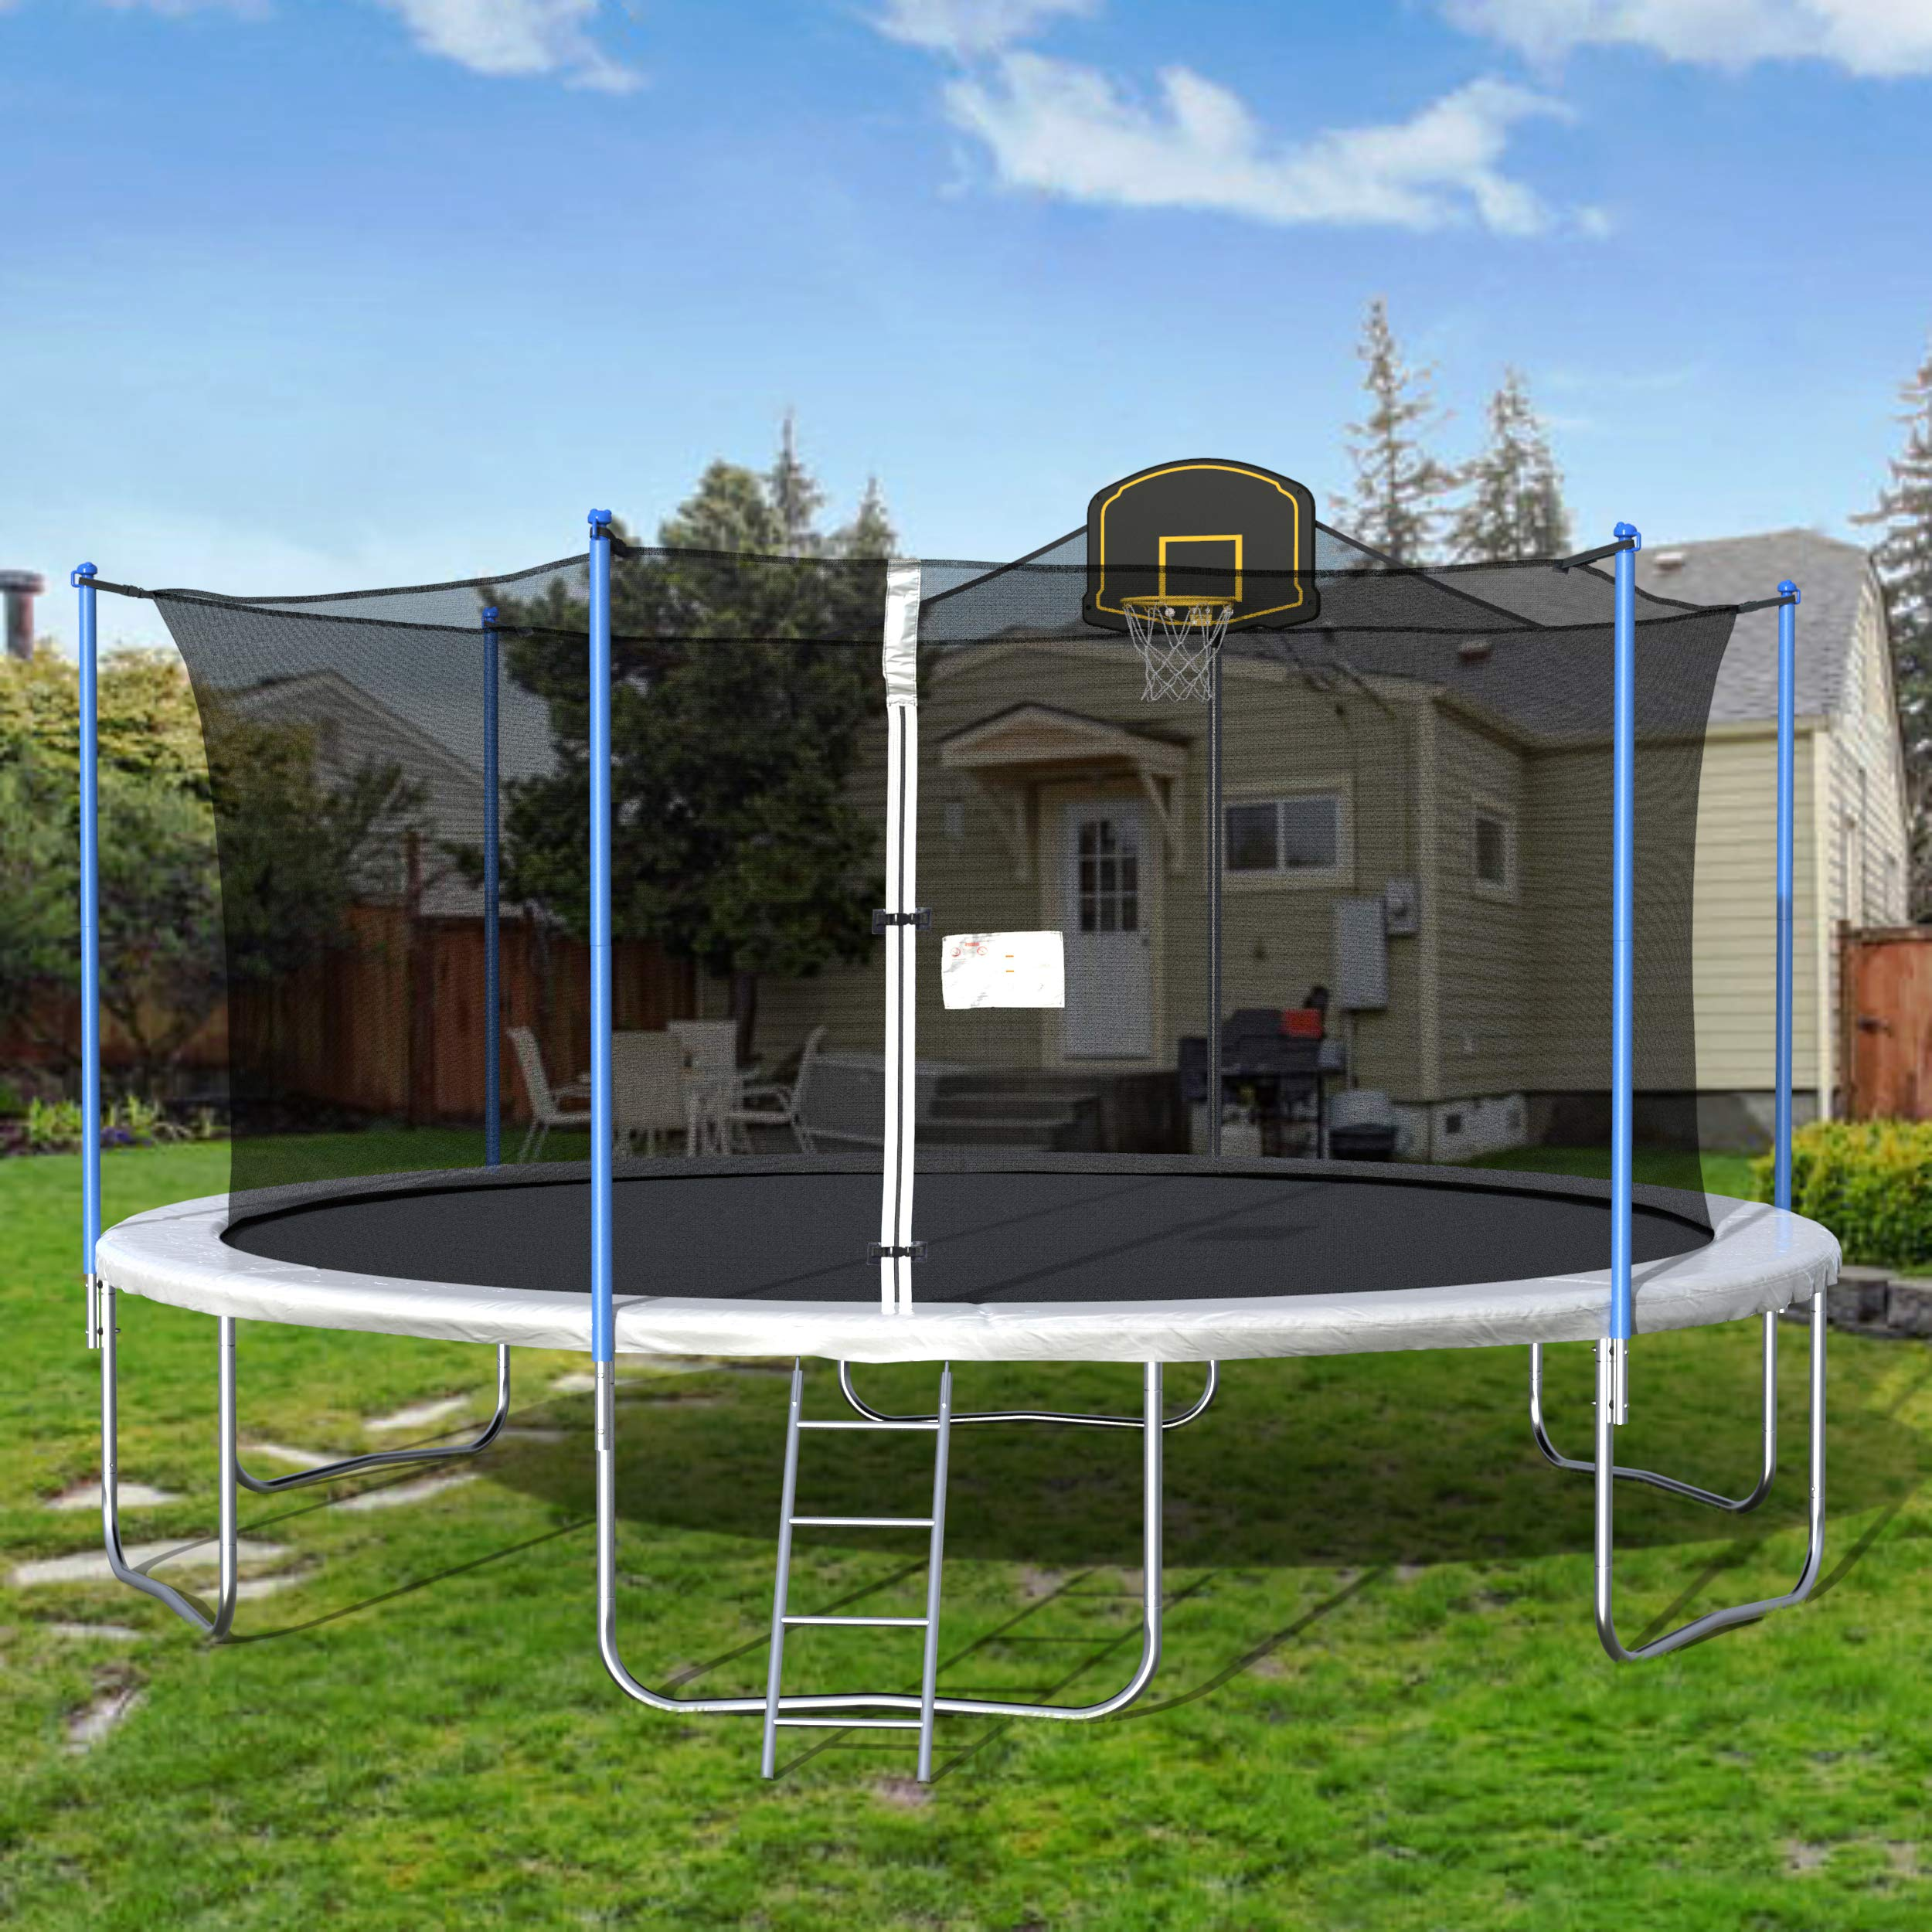 SIRUITON 14 feet / 15 feet / 16 feet Trampoline, Children 's Trampoline, Spring Jumping Ladder with Safety net, Family Outdoor Entertainment and Leisure Trampoline, Multi-Color Optional